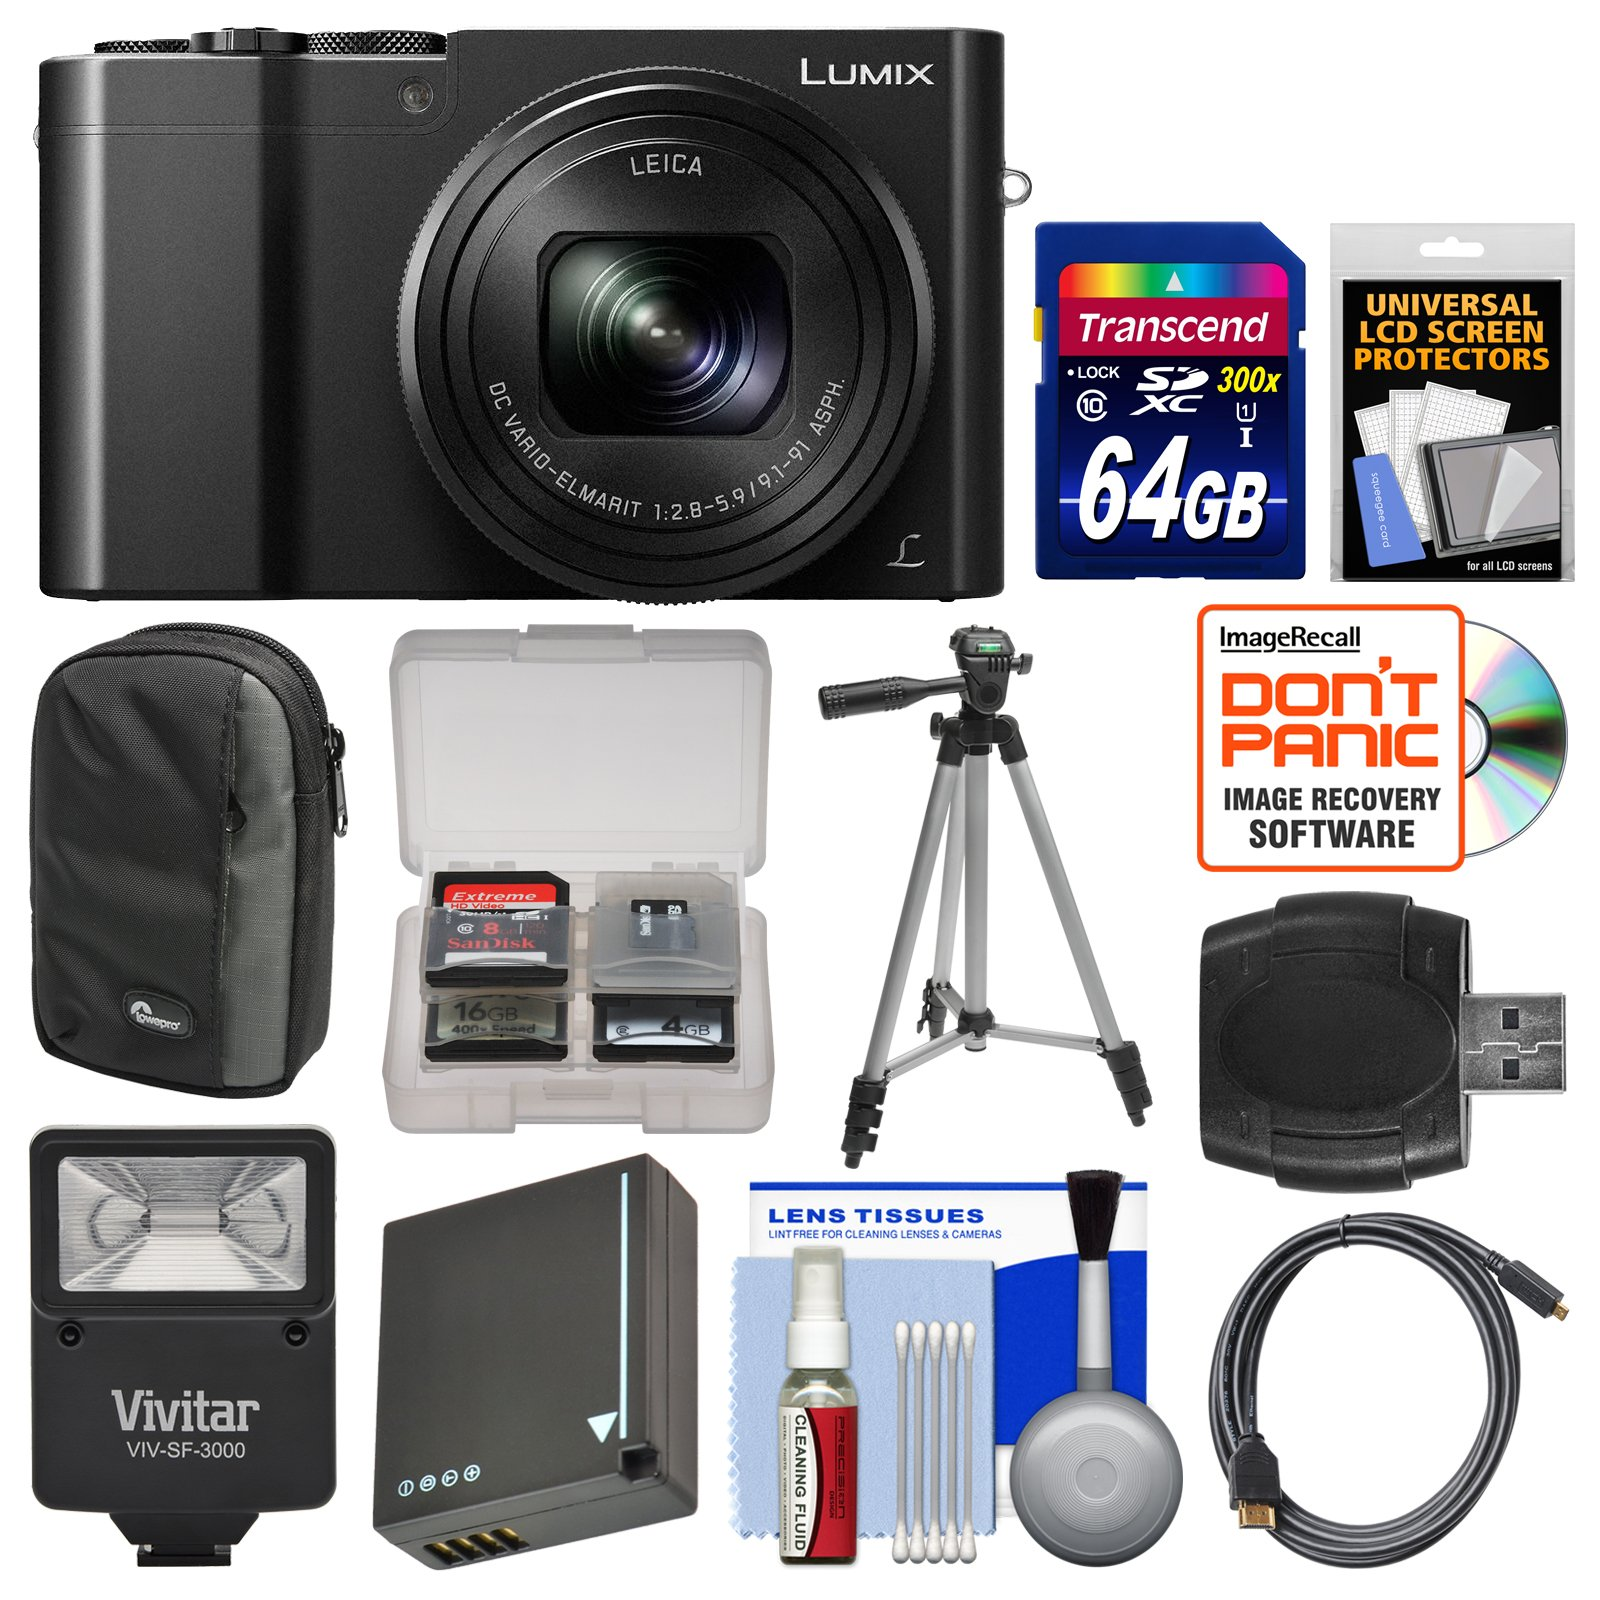 Panasonic Lumix DMC-ZS100 4K Wi-Fi Digital Camera (Black) with 64GB Card + Case + Flash + Battery + Tripod + Kit by Panasonic